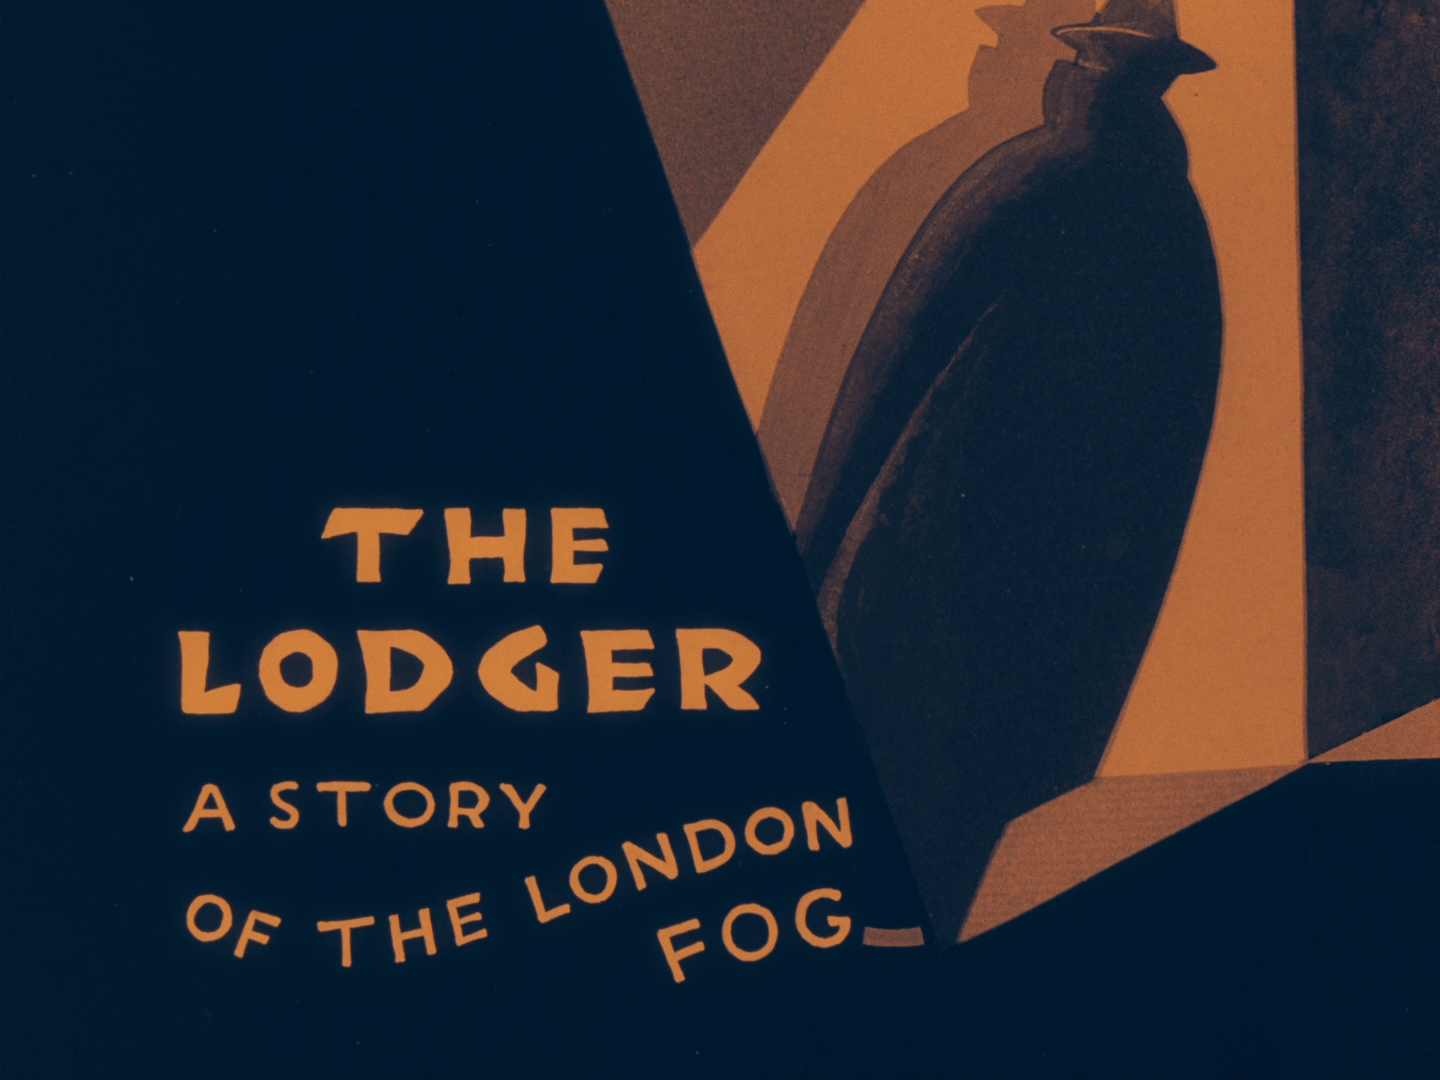 The Lodger (1926, dir. Alfred Hitchcock) UK Network Blu-ray, restored version 3